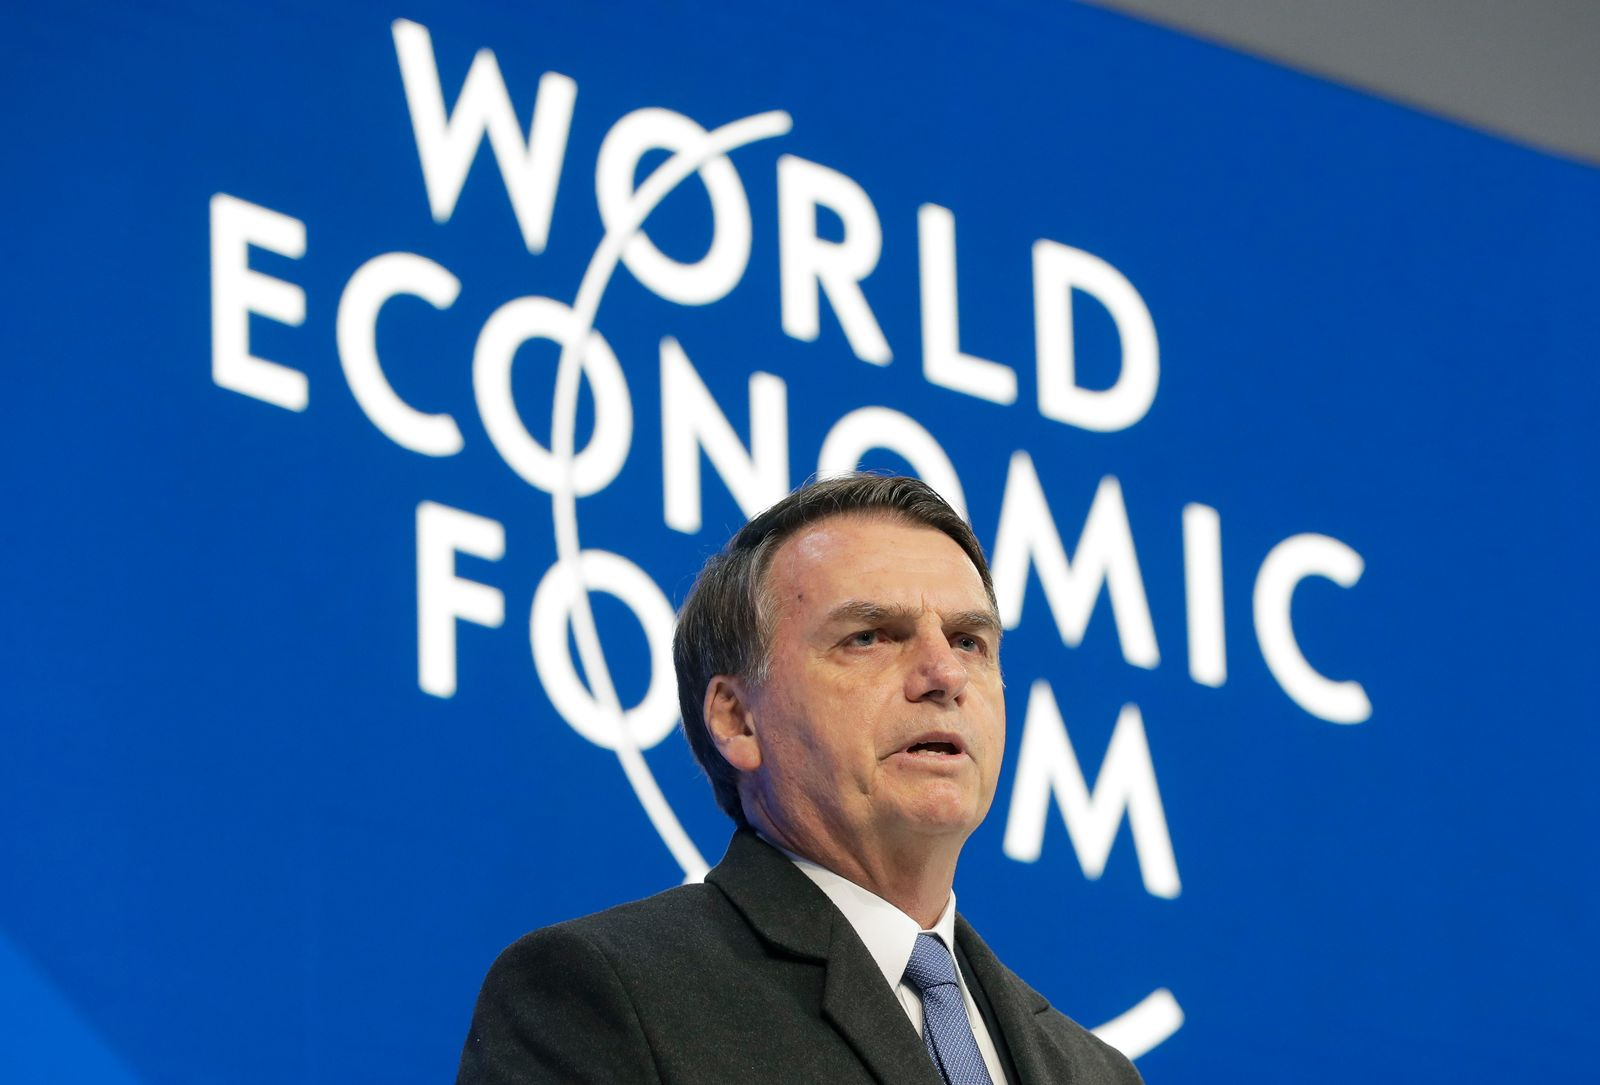 Jair Bolsonaro, President of Brazil, addresses the annual meeting of the World Economic Forum in Davos, Switzerland, Tuesday, Jan. 22, 2019. (AP Photo/Markus Schreiber)